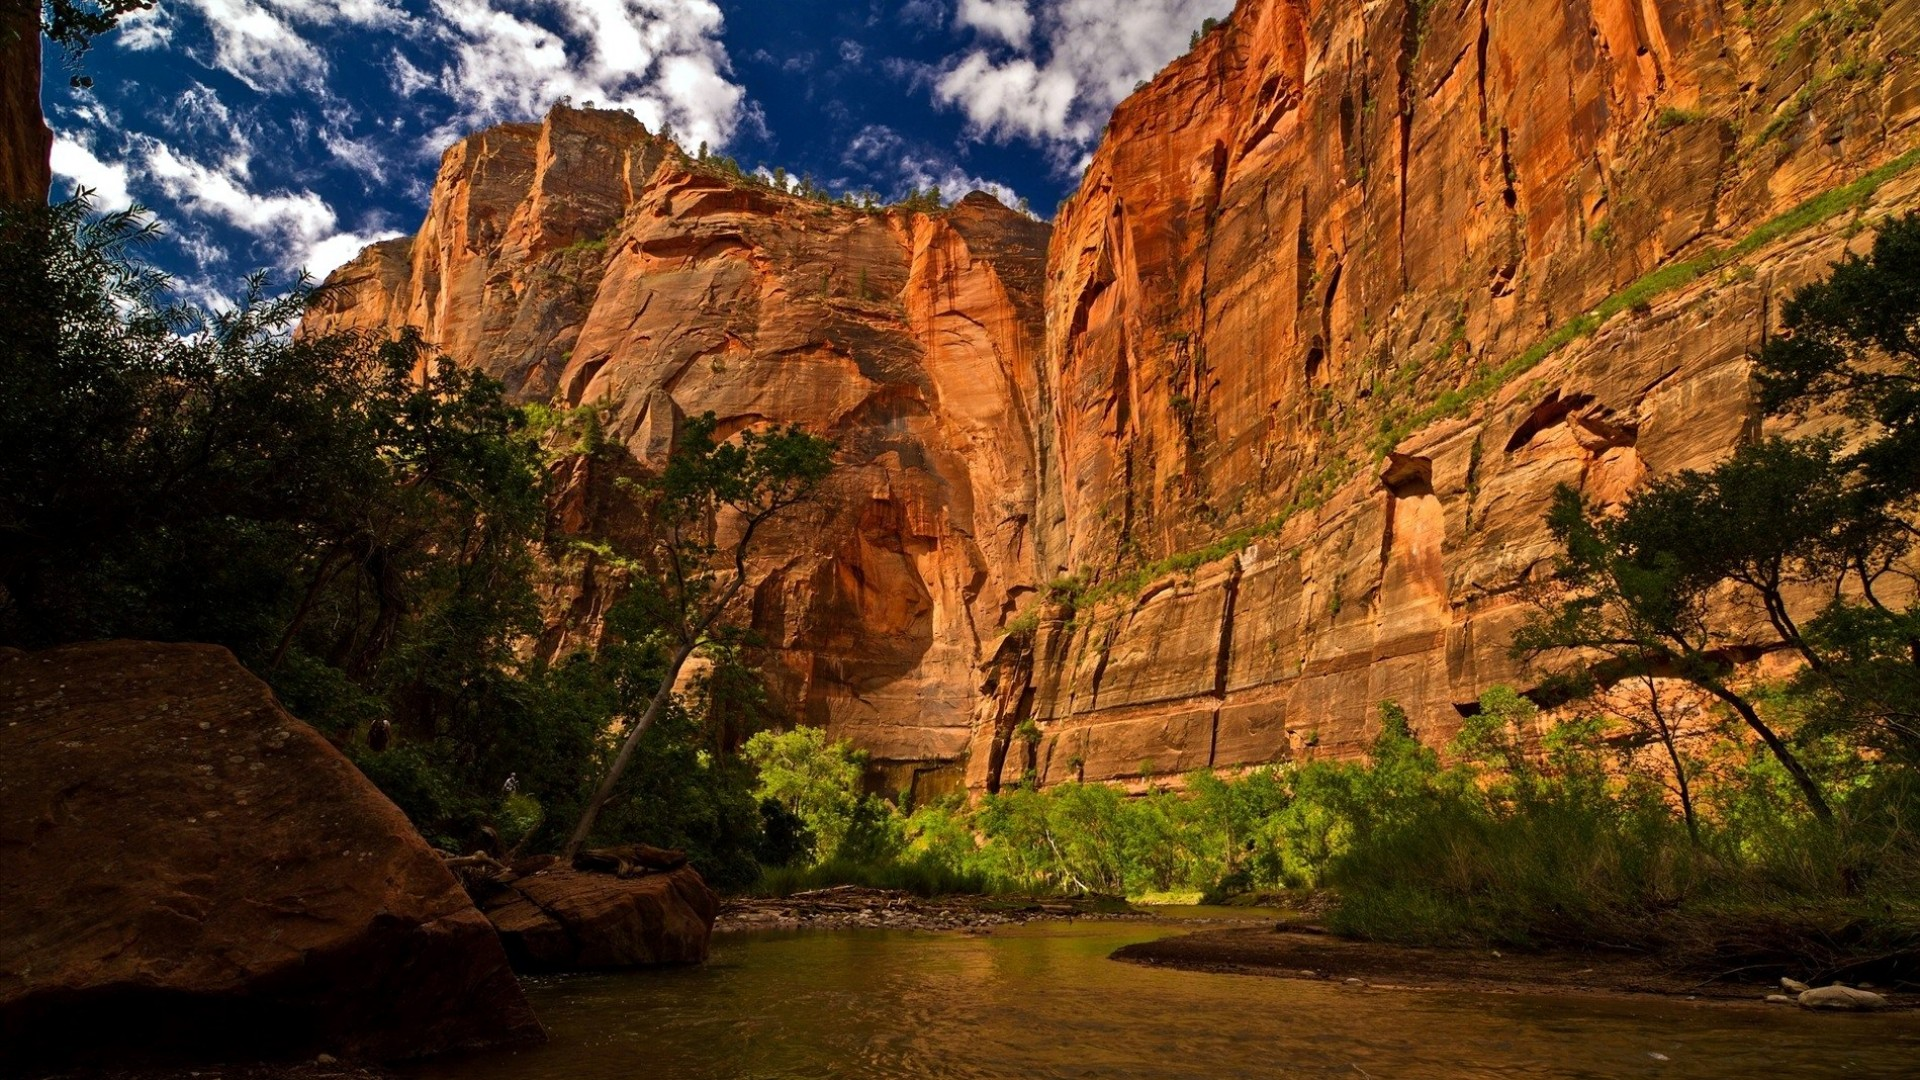 Zion National Park Utah USA wallpaper 10801920 Wallpaper 1920x1080